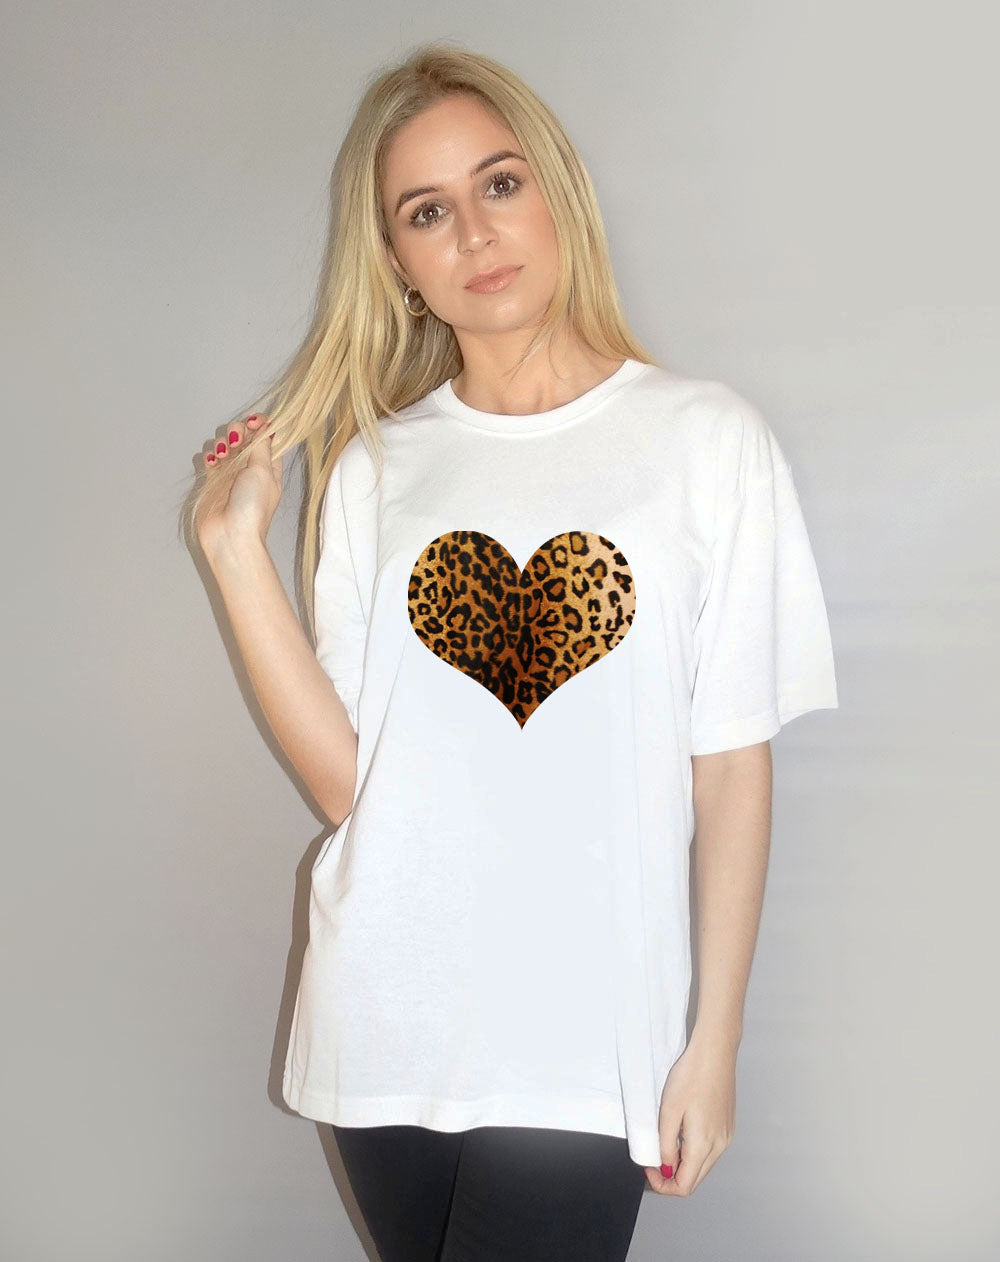 Leopard Heart Tshirt in White